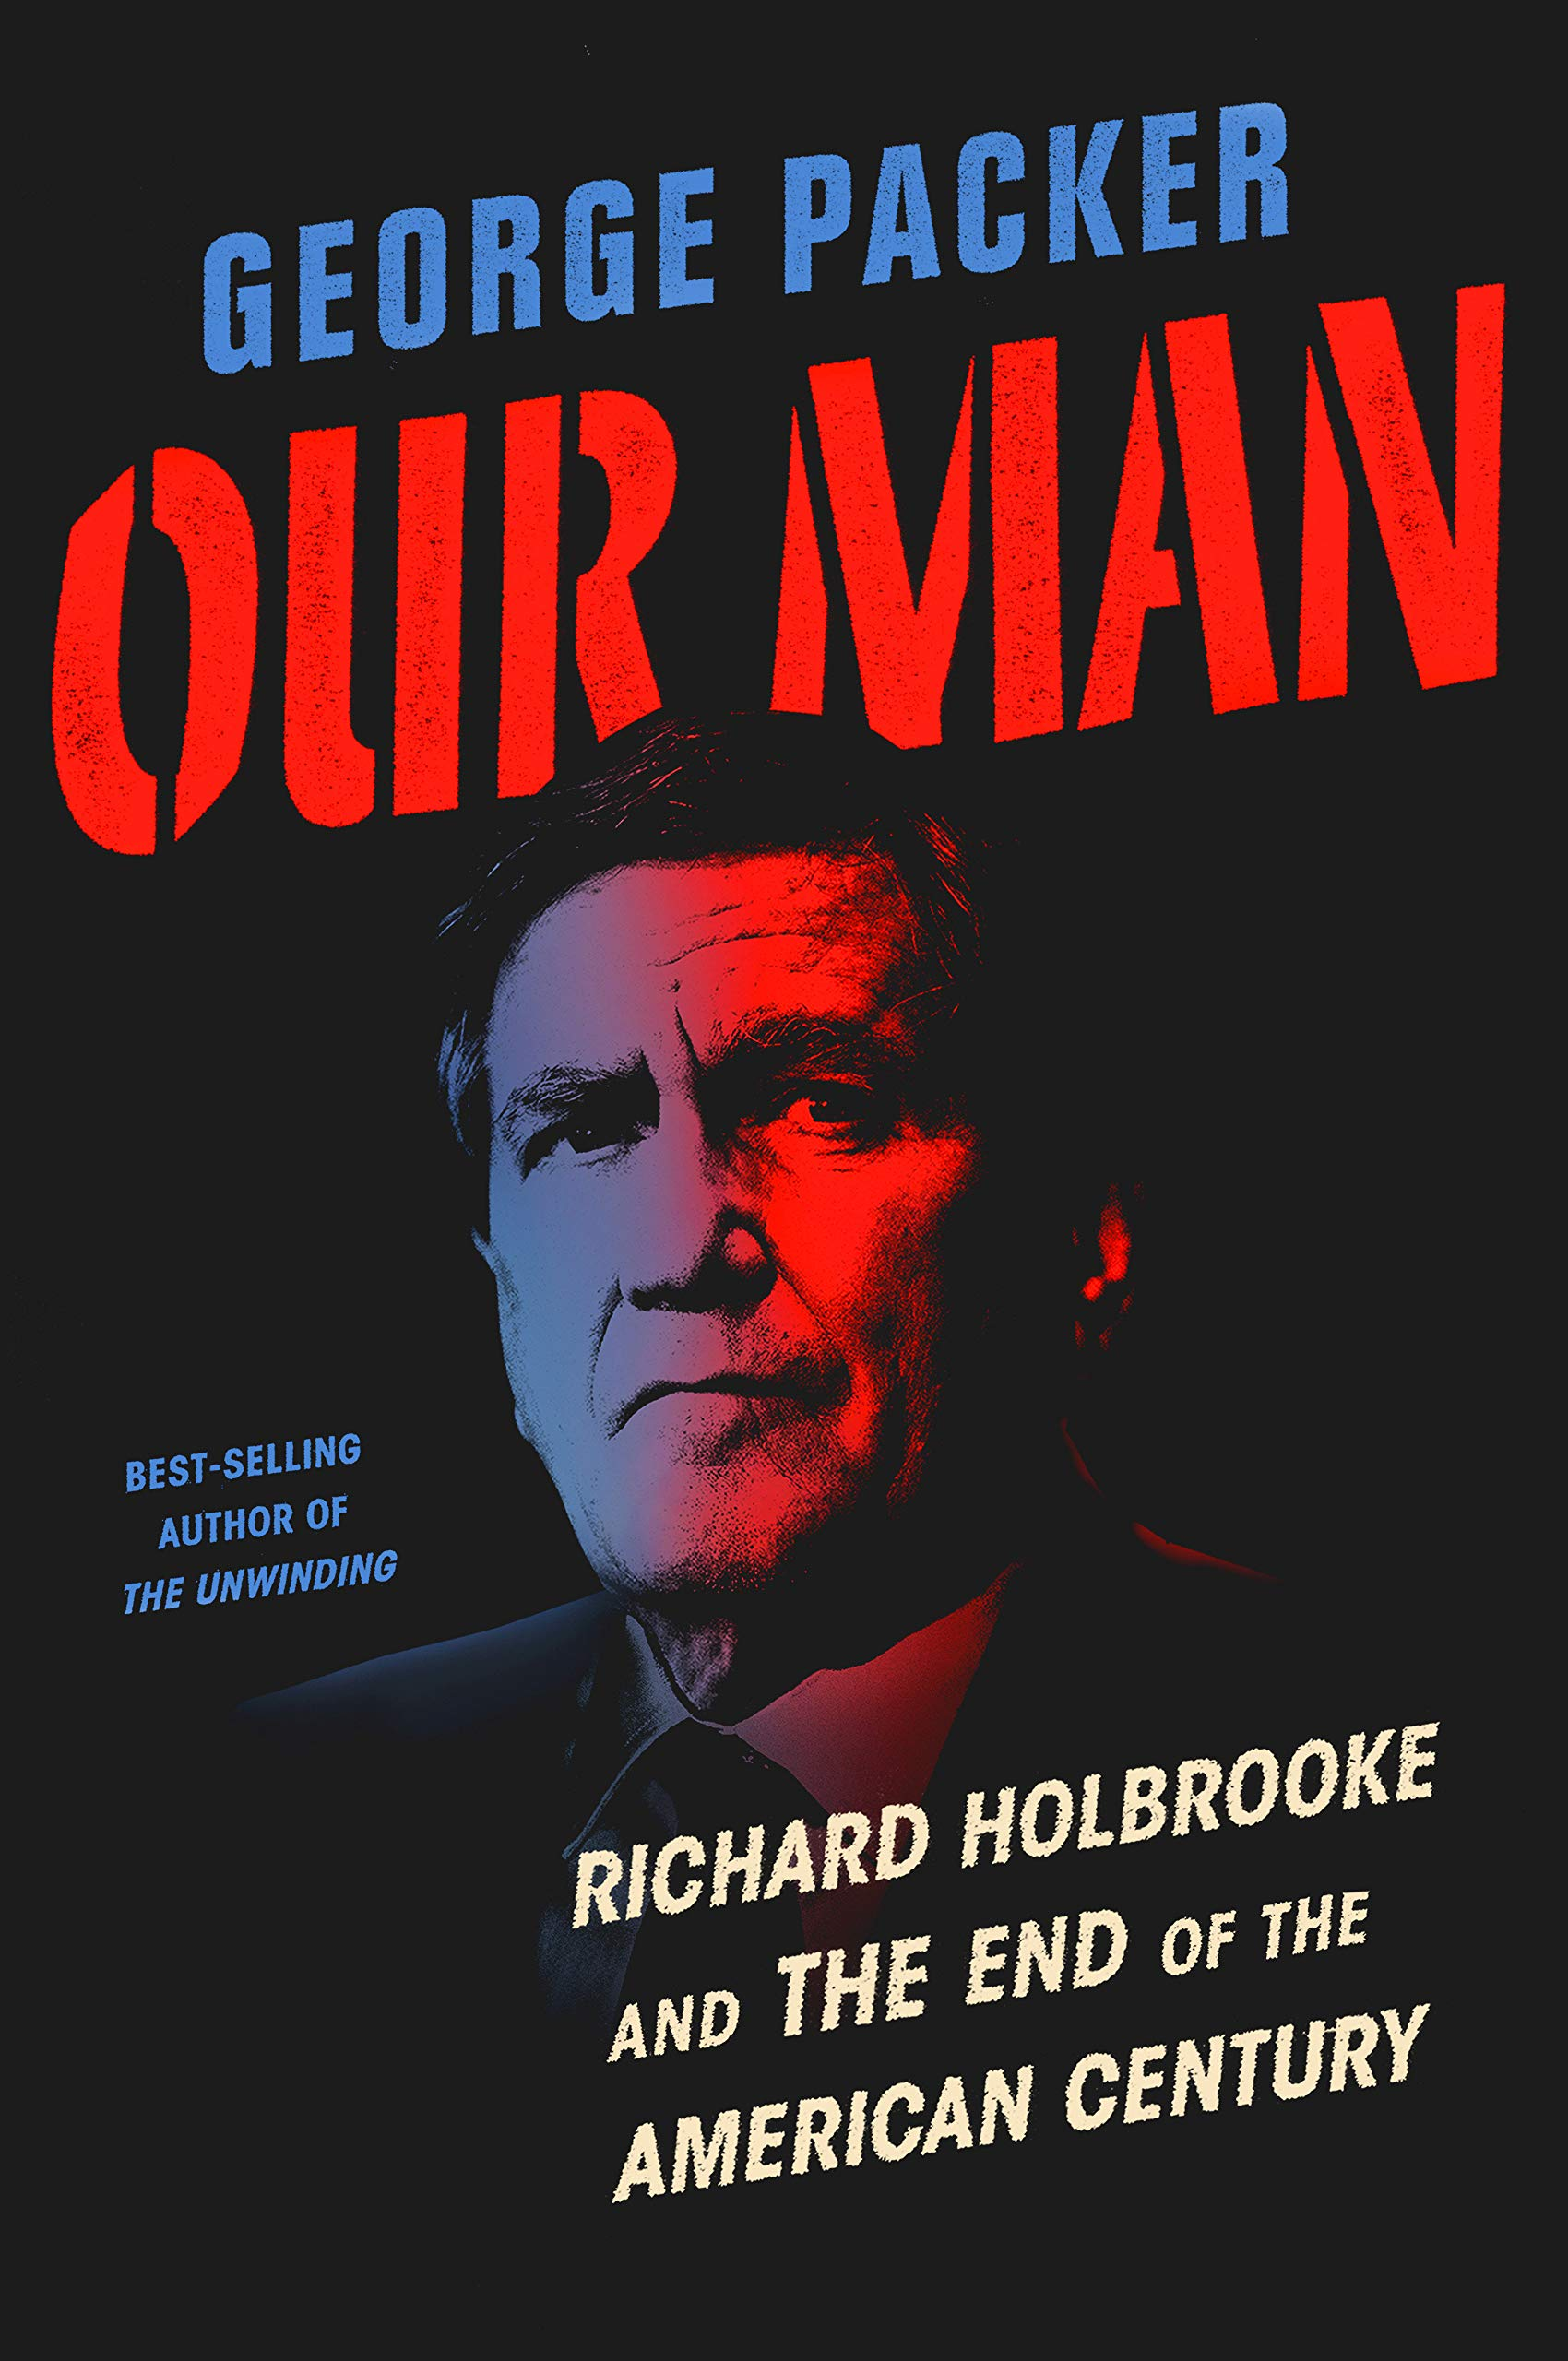 Our Man: Richard Holbrooke and the End of the American Century, By George Packer, Knopf, 2019  http://knopfdoubleday.com/2019/04/04/our-man-by-george-packer/